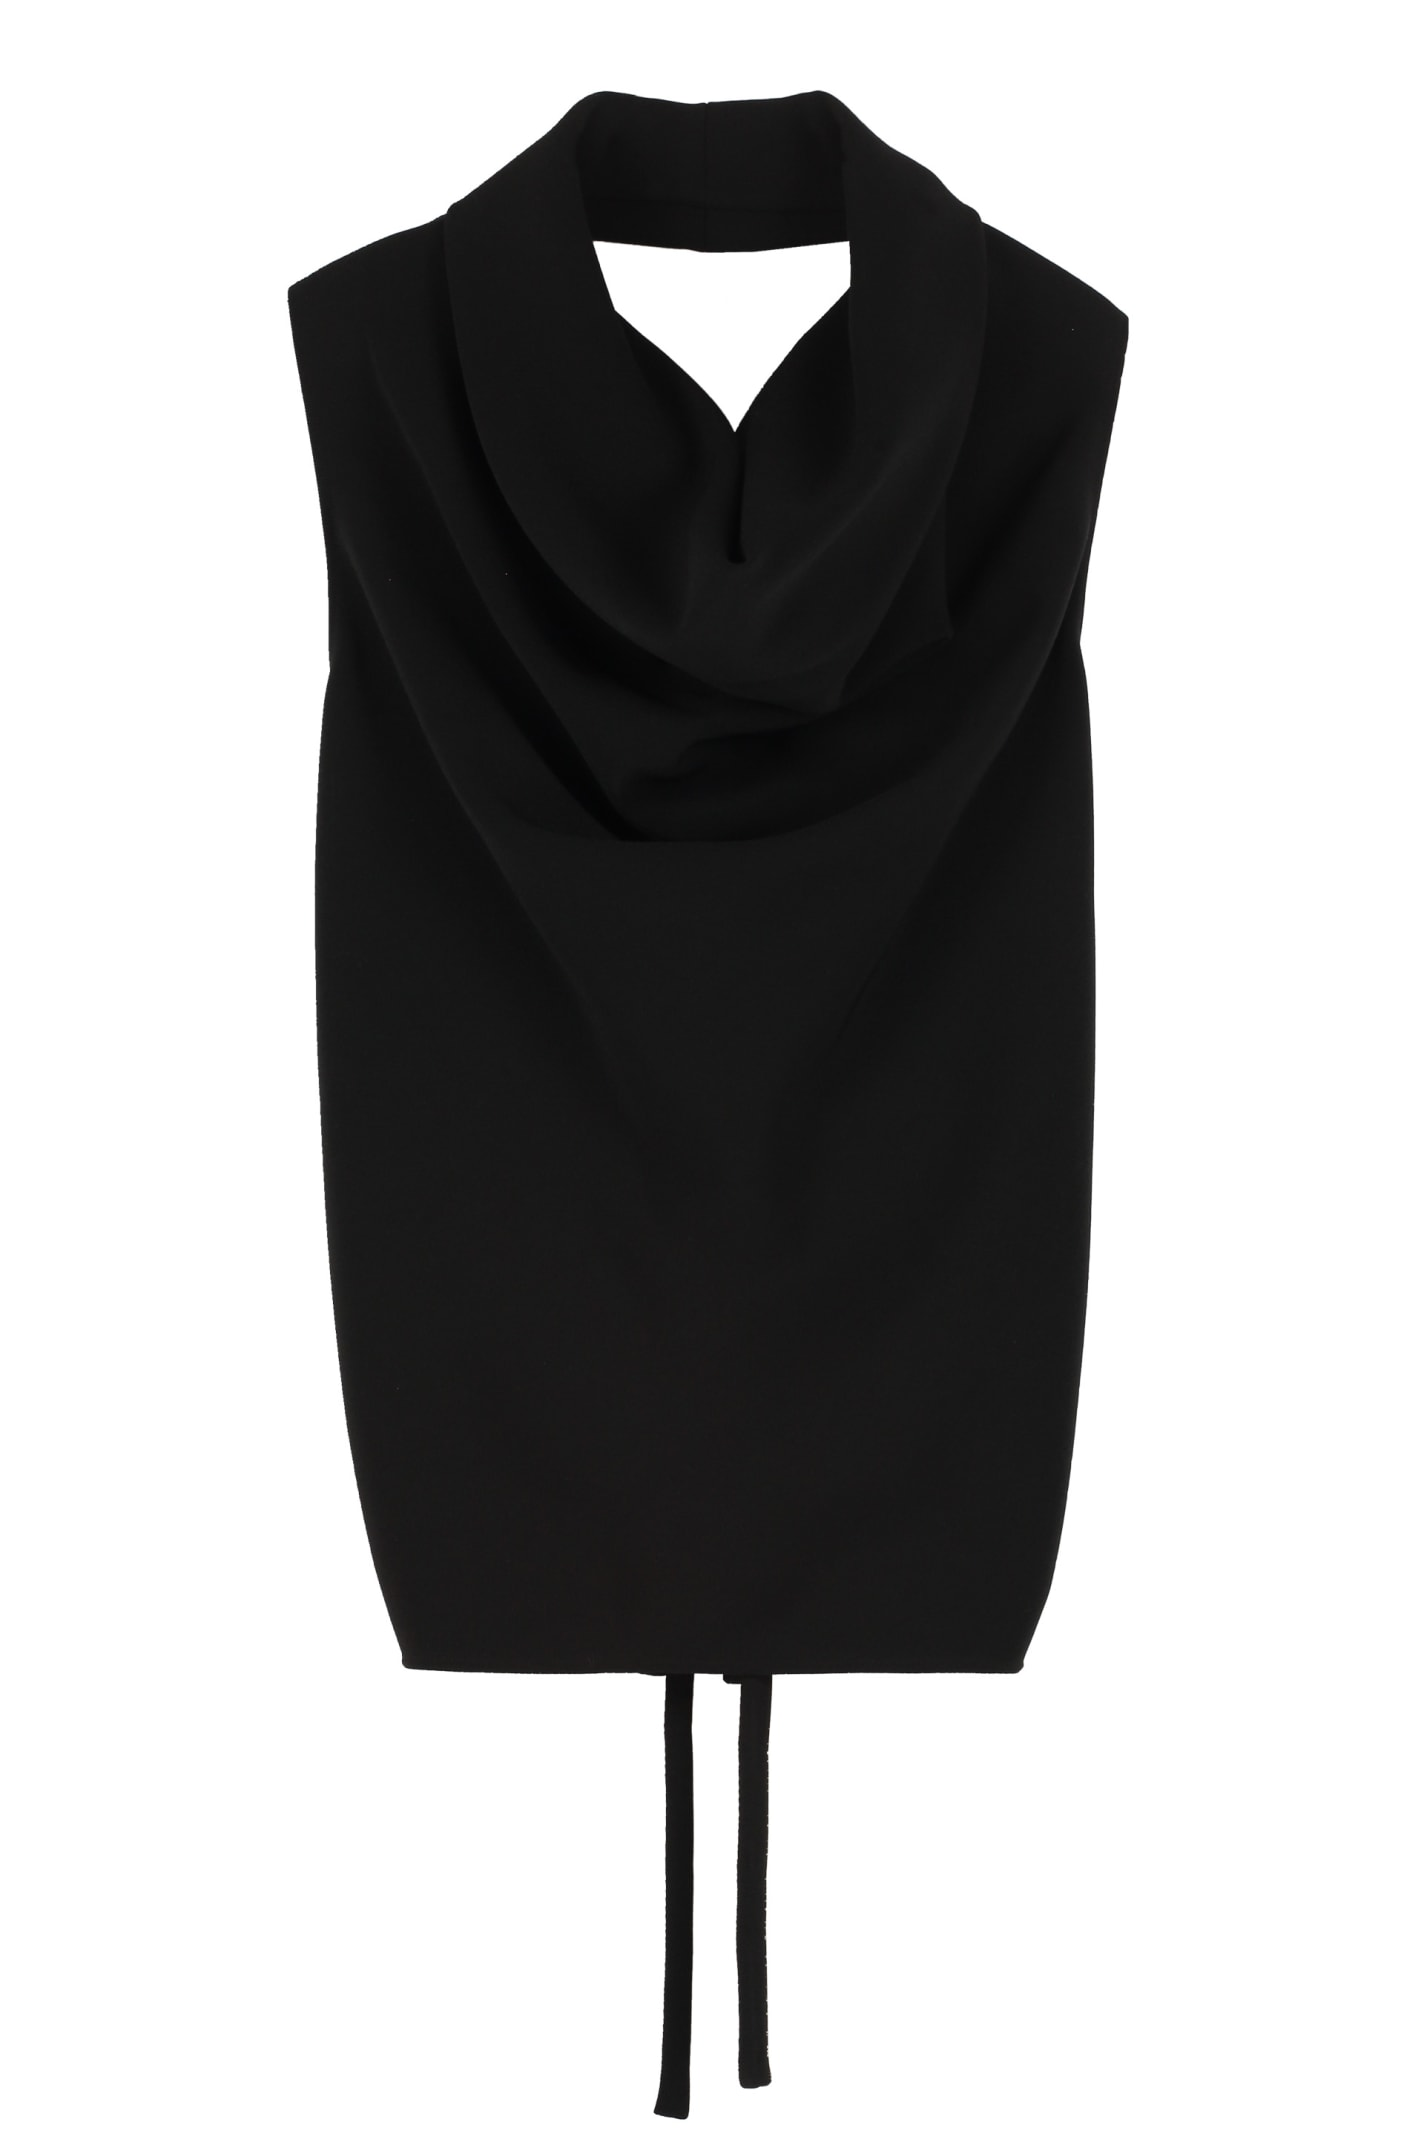 Maison Margiela Draped Neckline Jersey Top